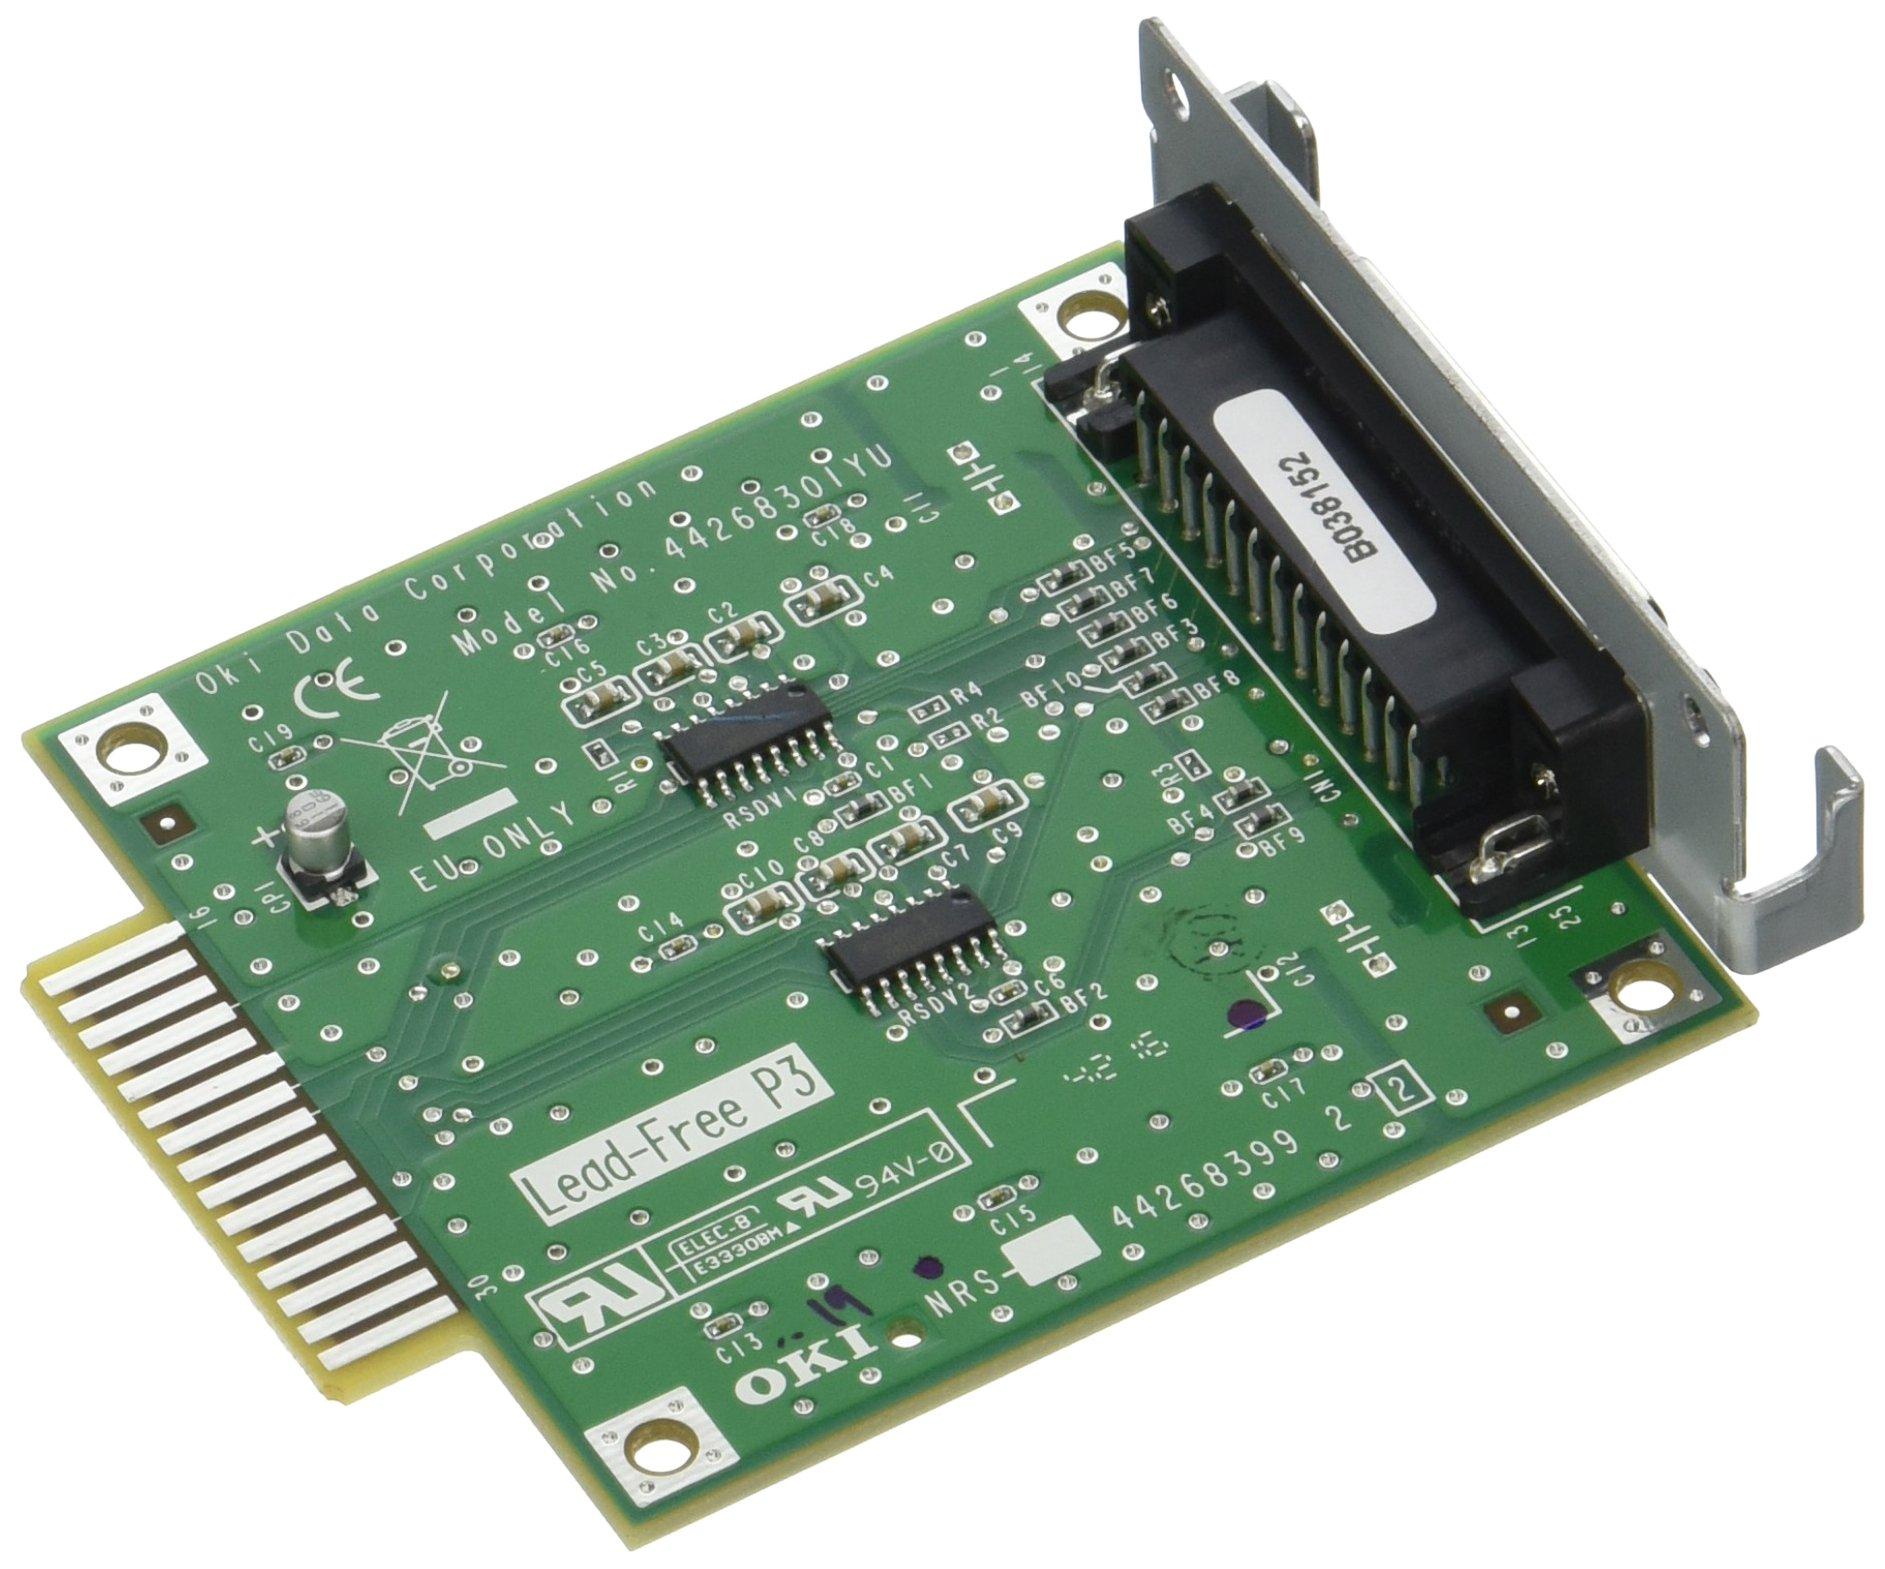 RS-232C Serial Card for ML600 Series by Oki Data